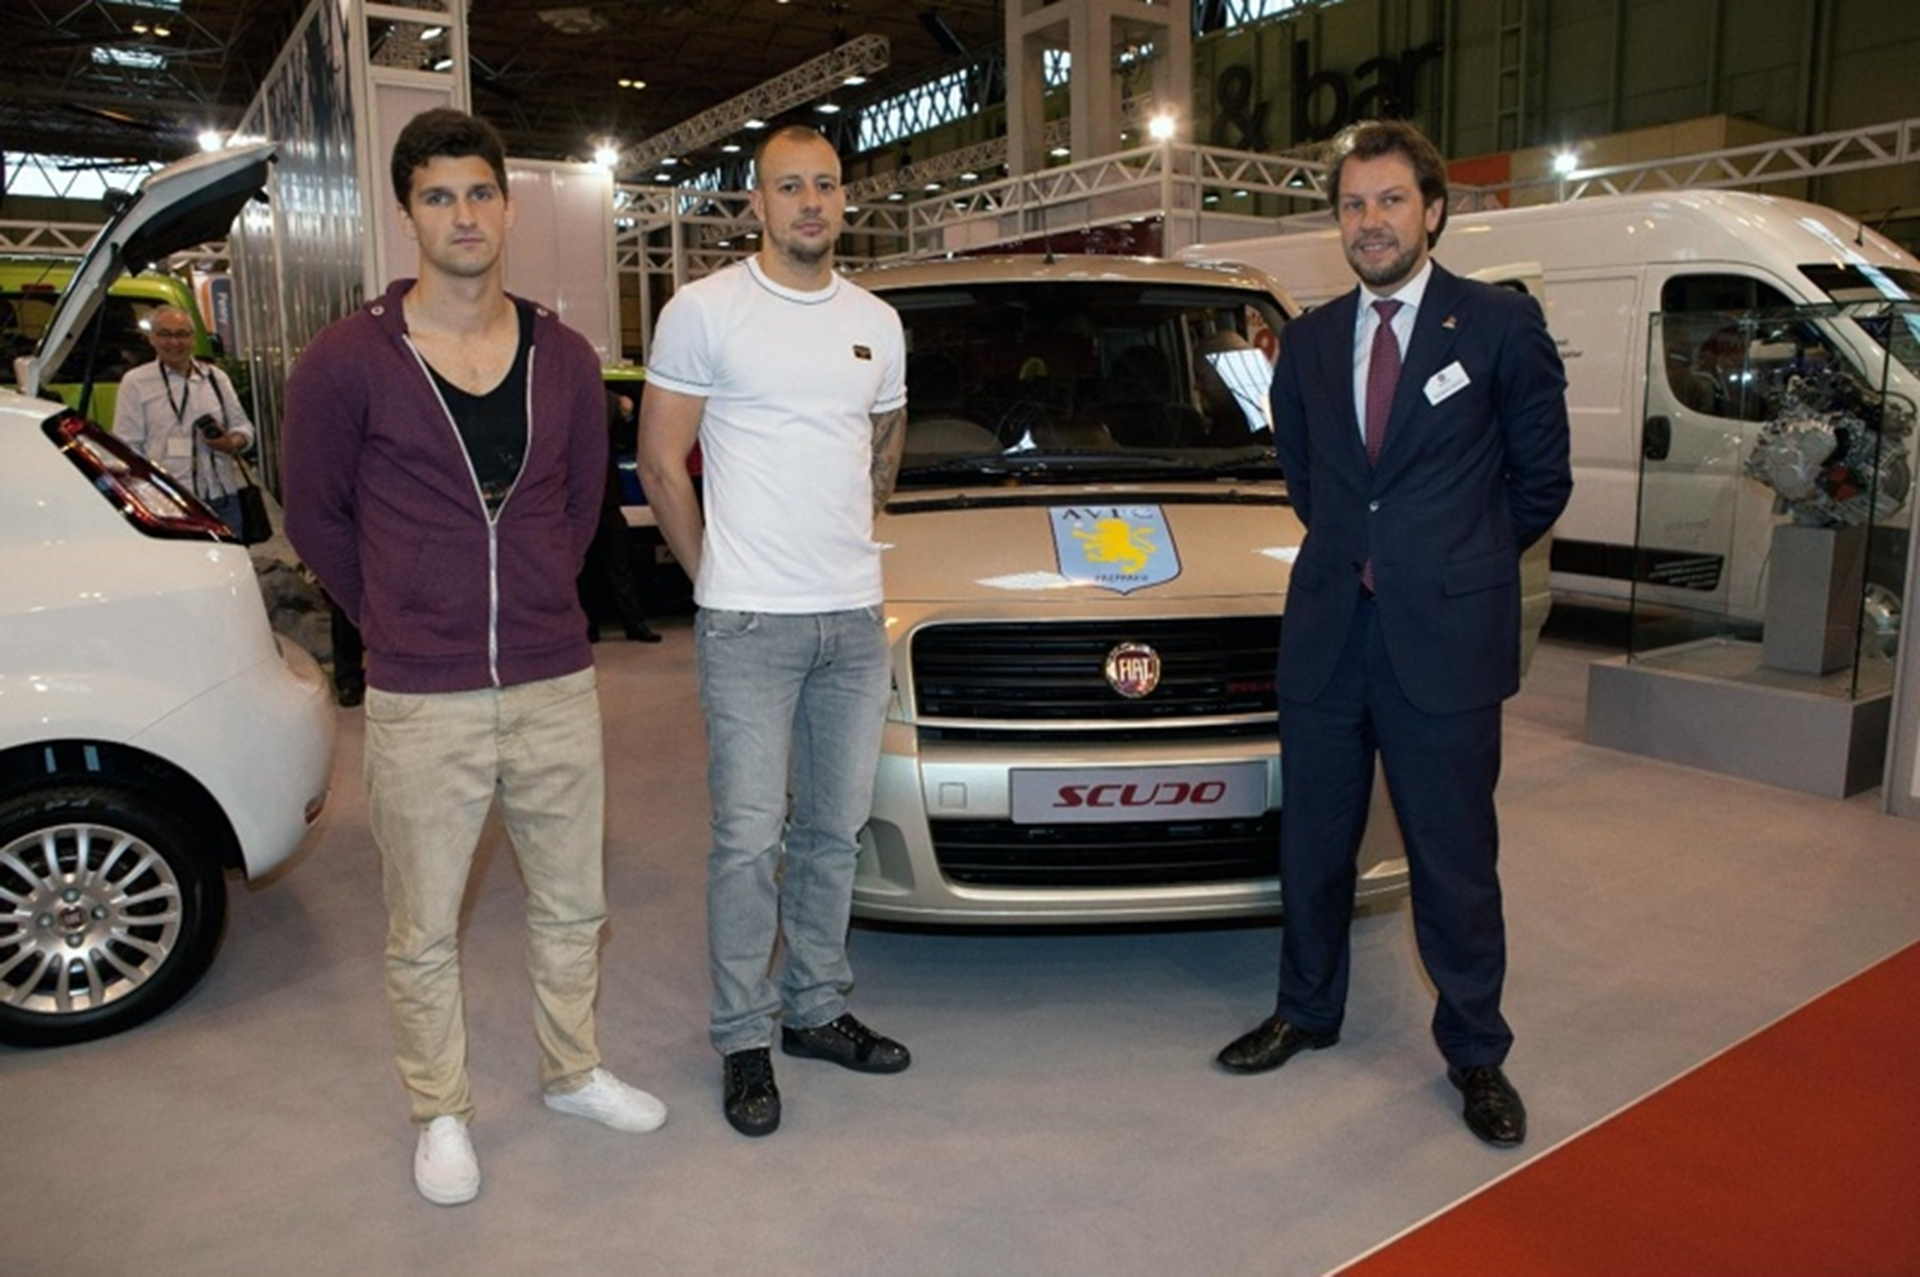 football stars line up to see new aston villa minibus